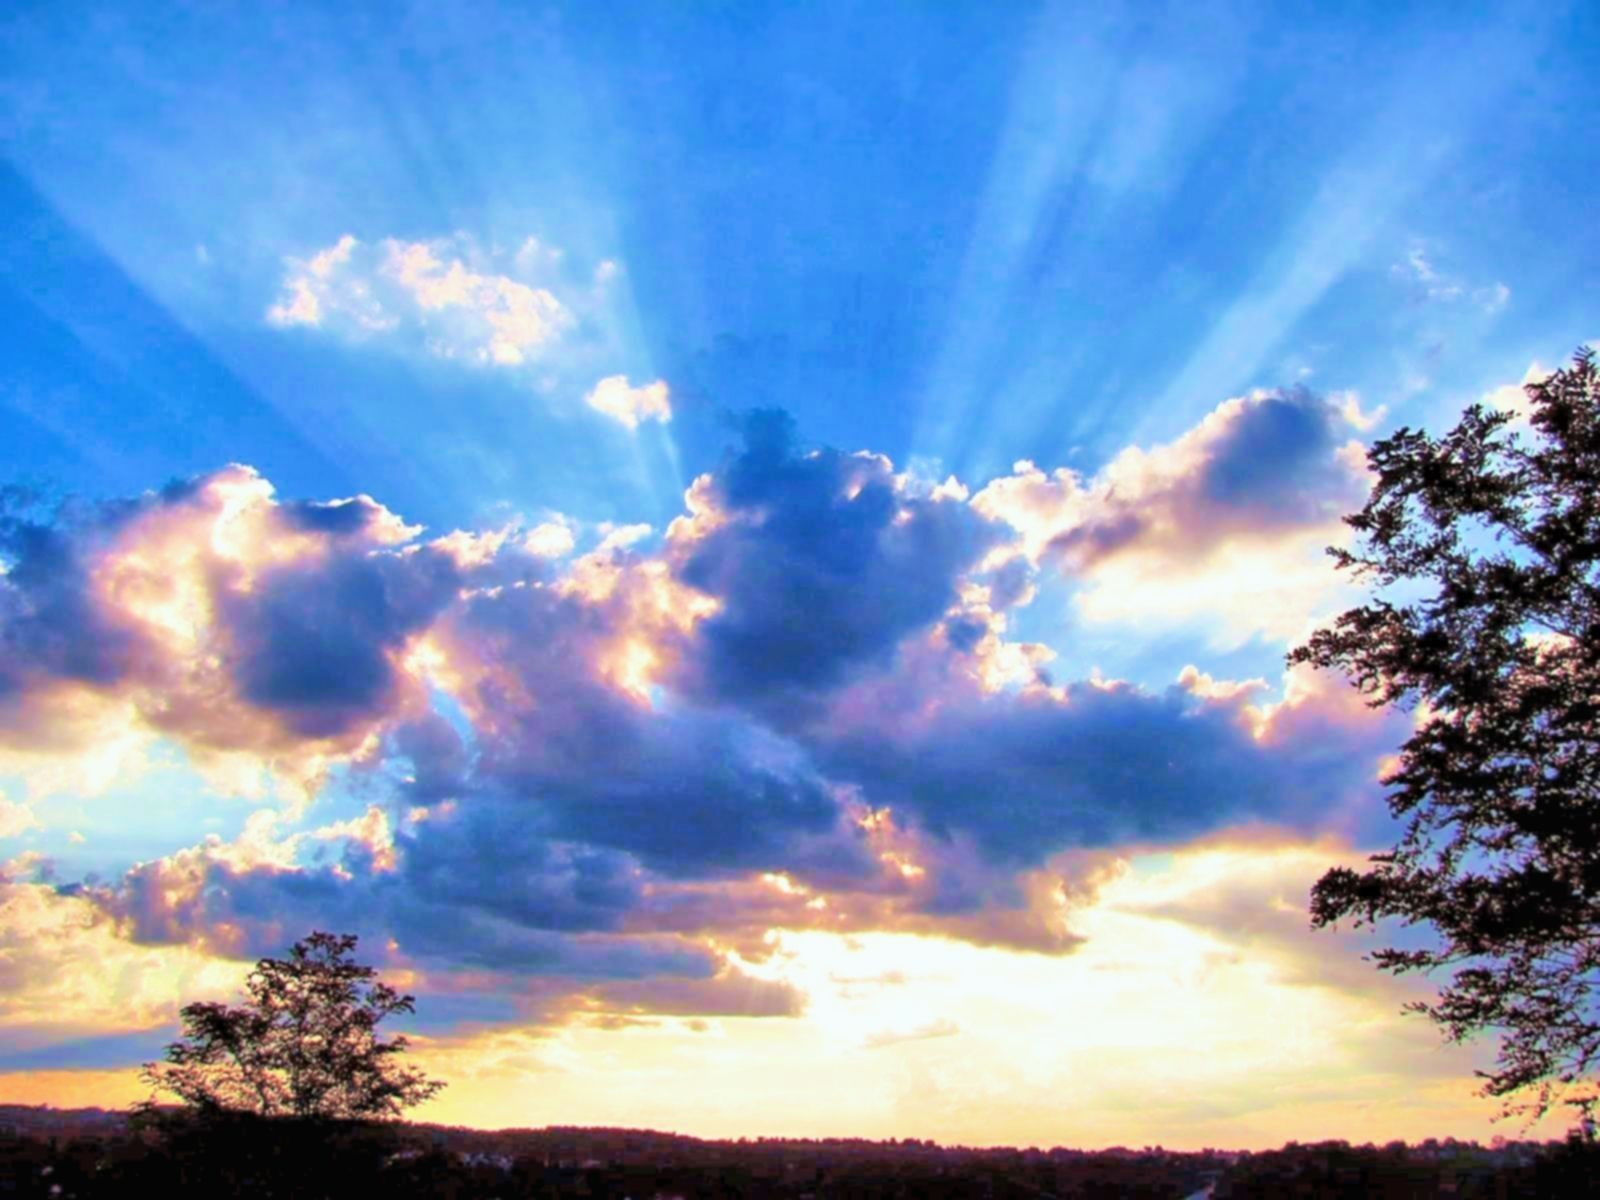 1600x1200 Sky: Inspirational Sunset Rays Clouds Blue Sky Nature Wallpaper Wide ...